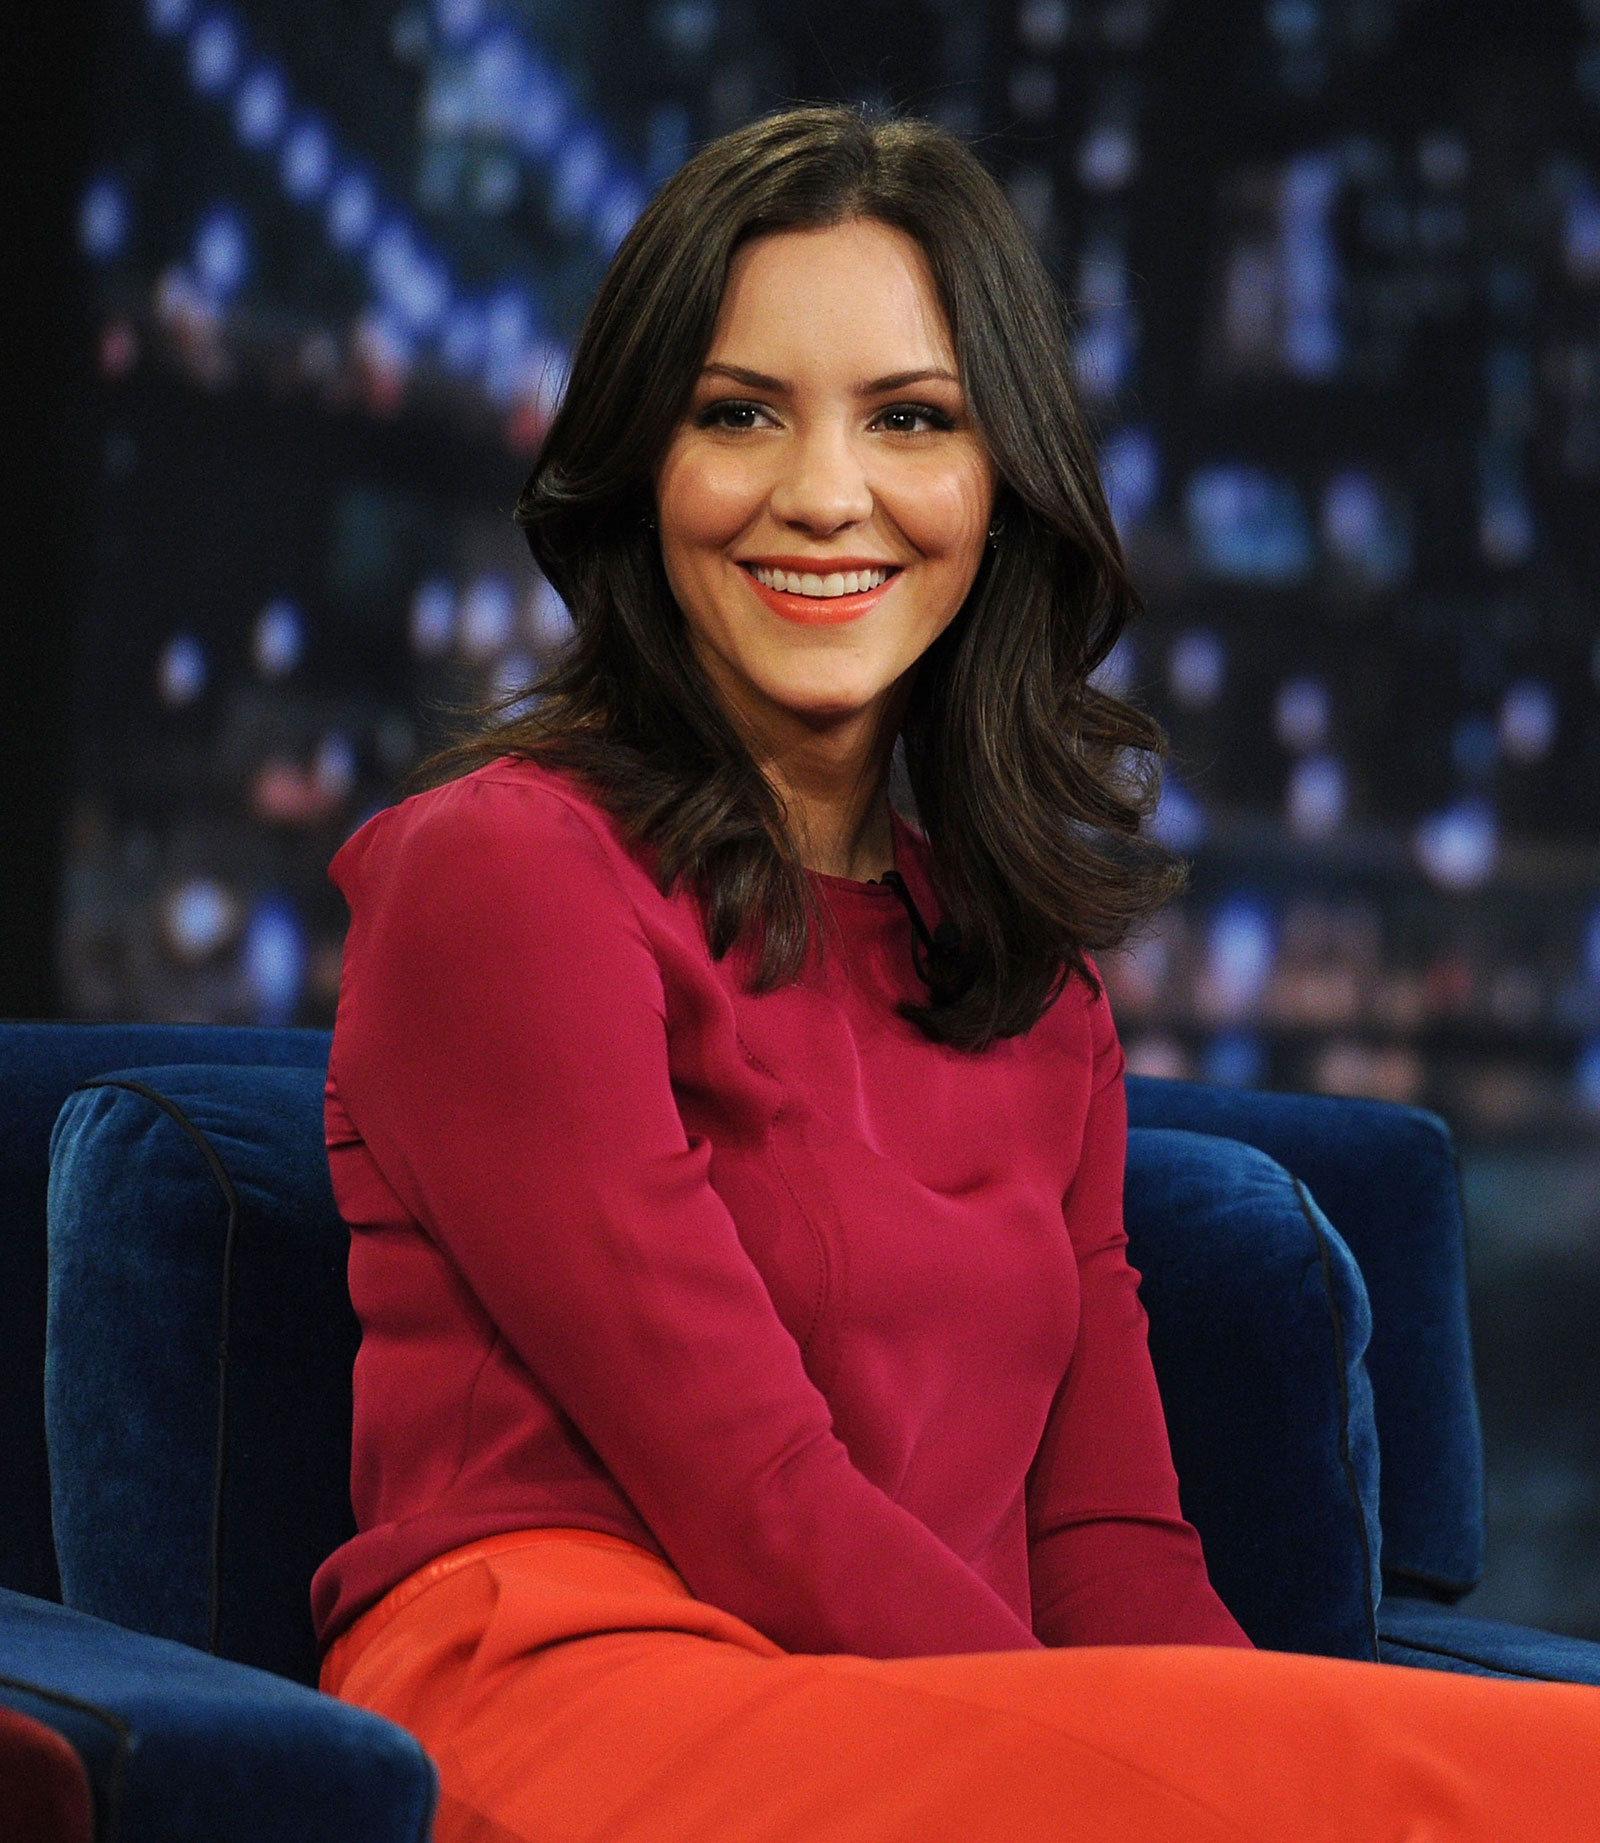 Katharine mcphee at late night with jimmy fallon show